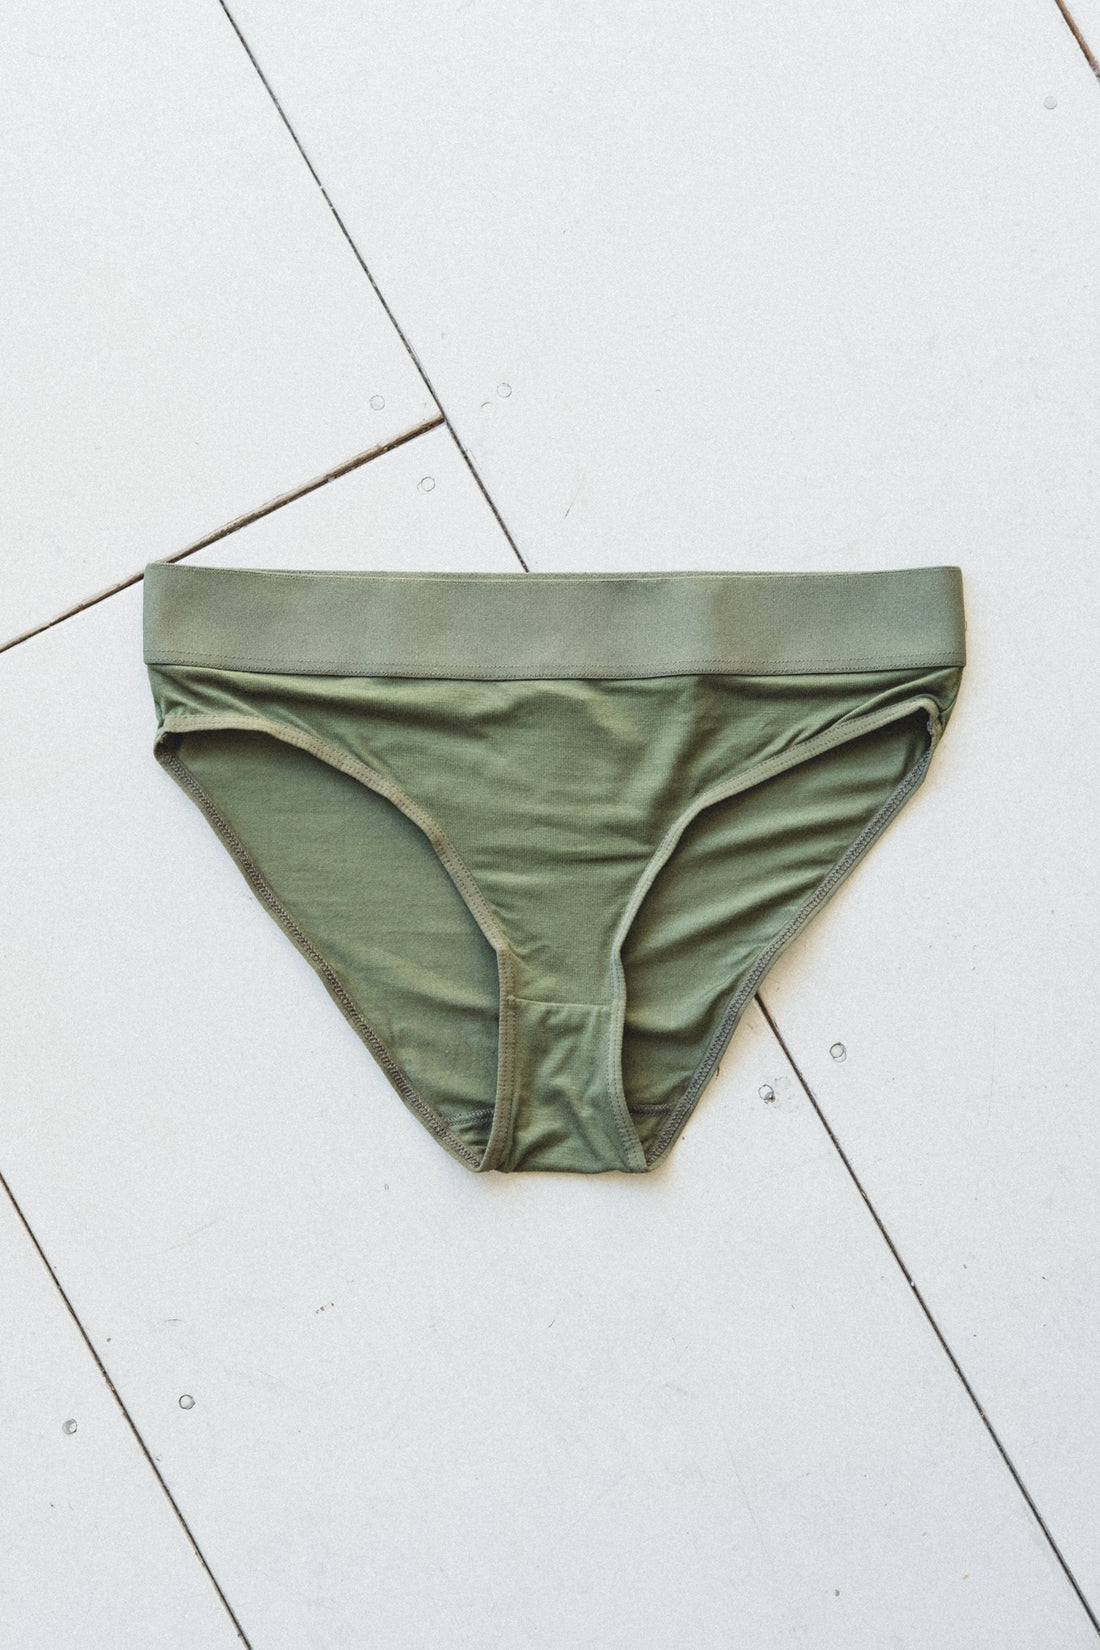 ELASTIC BELL UNDERWEAR IN GREEN